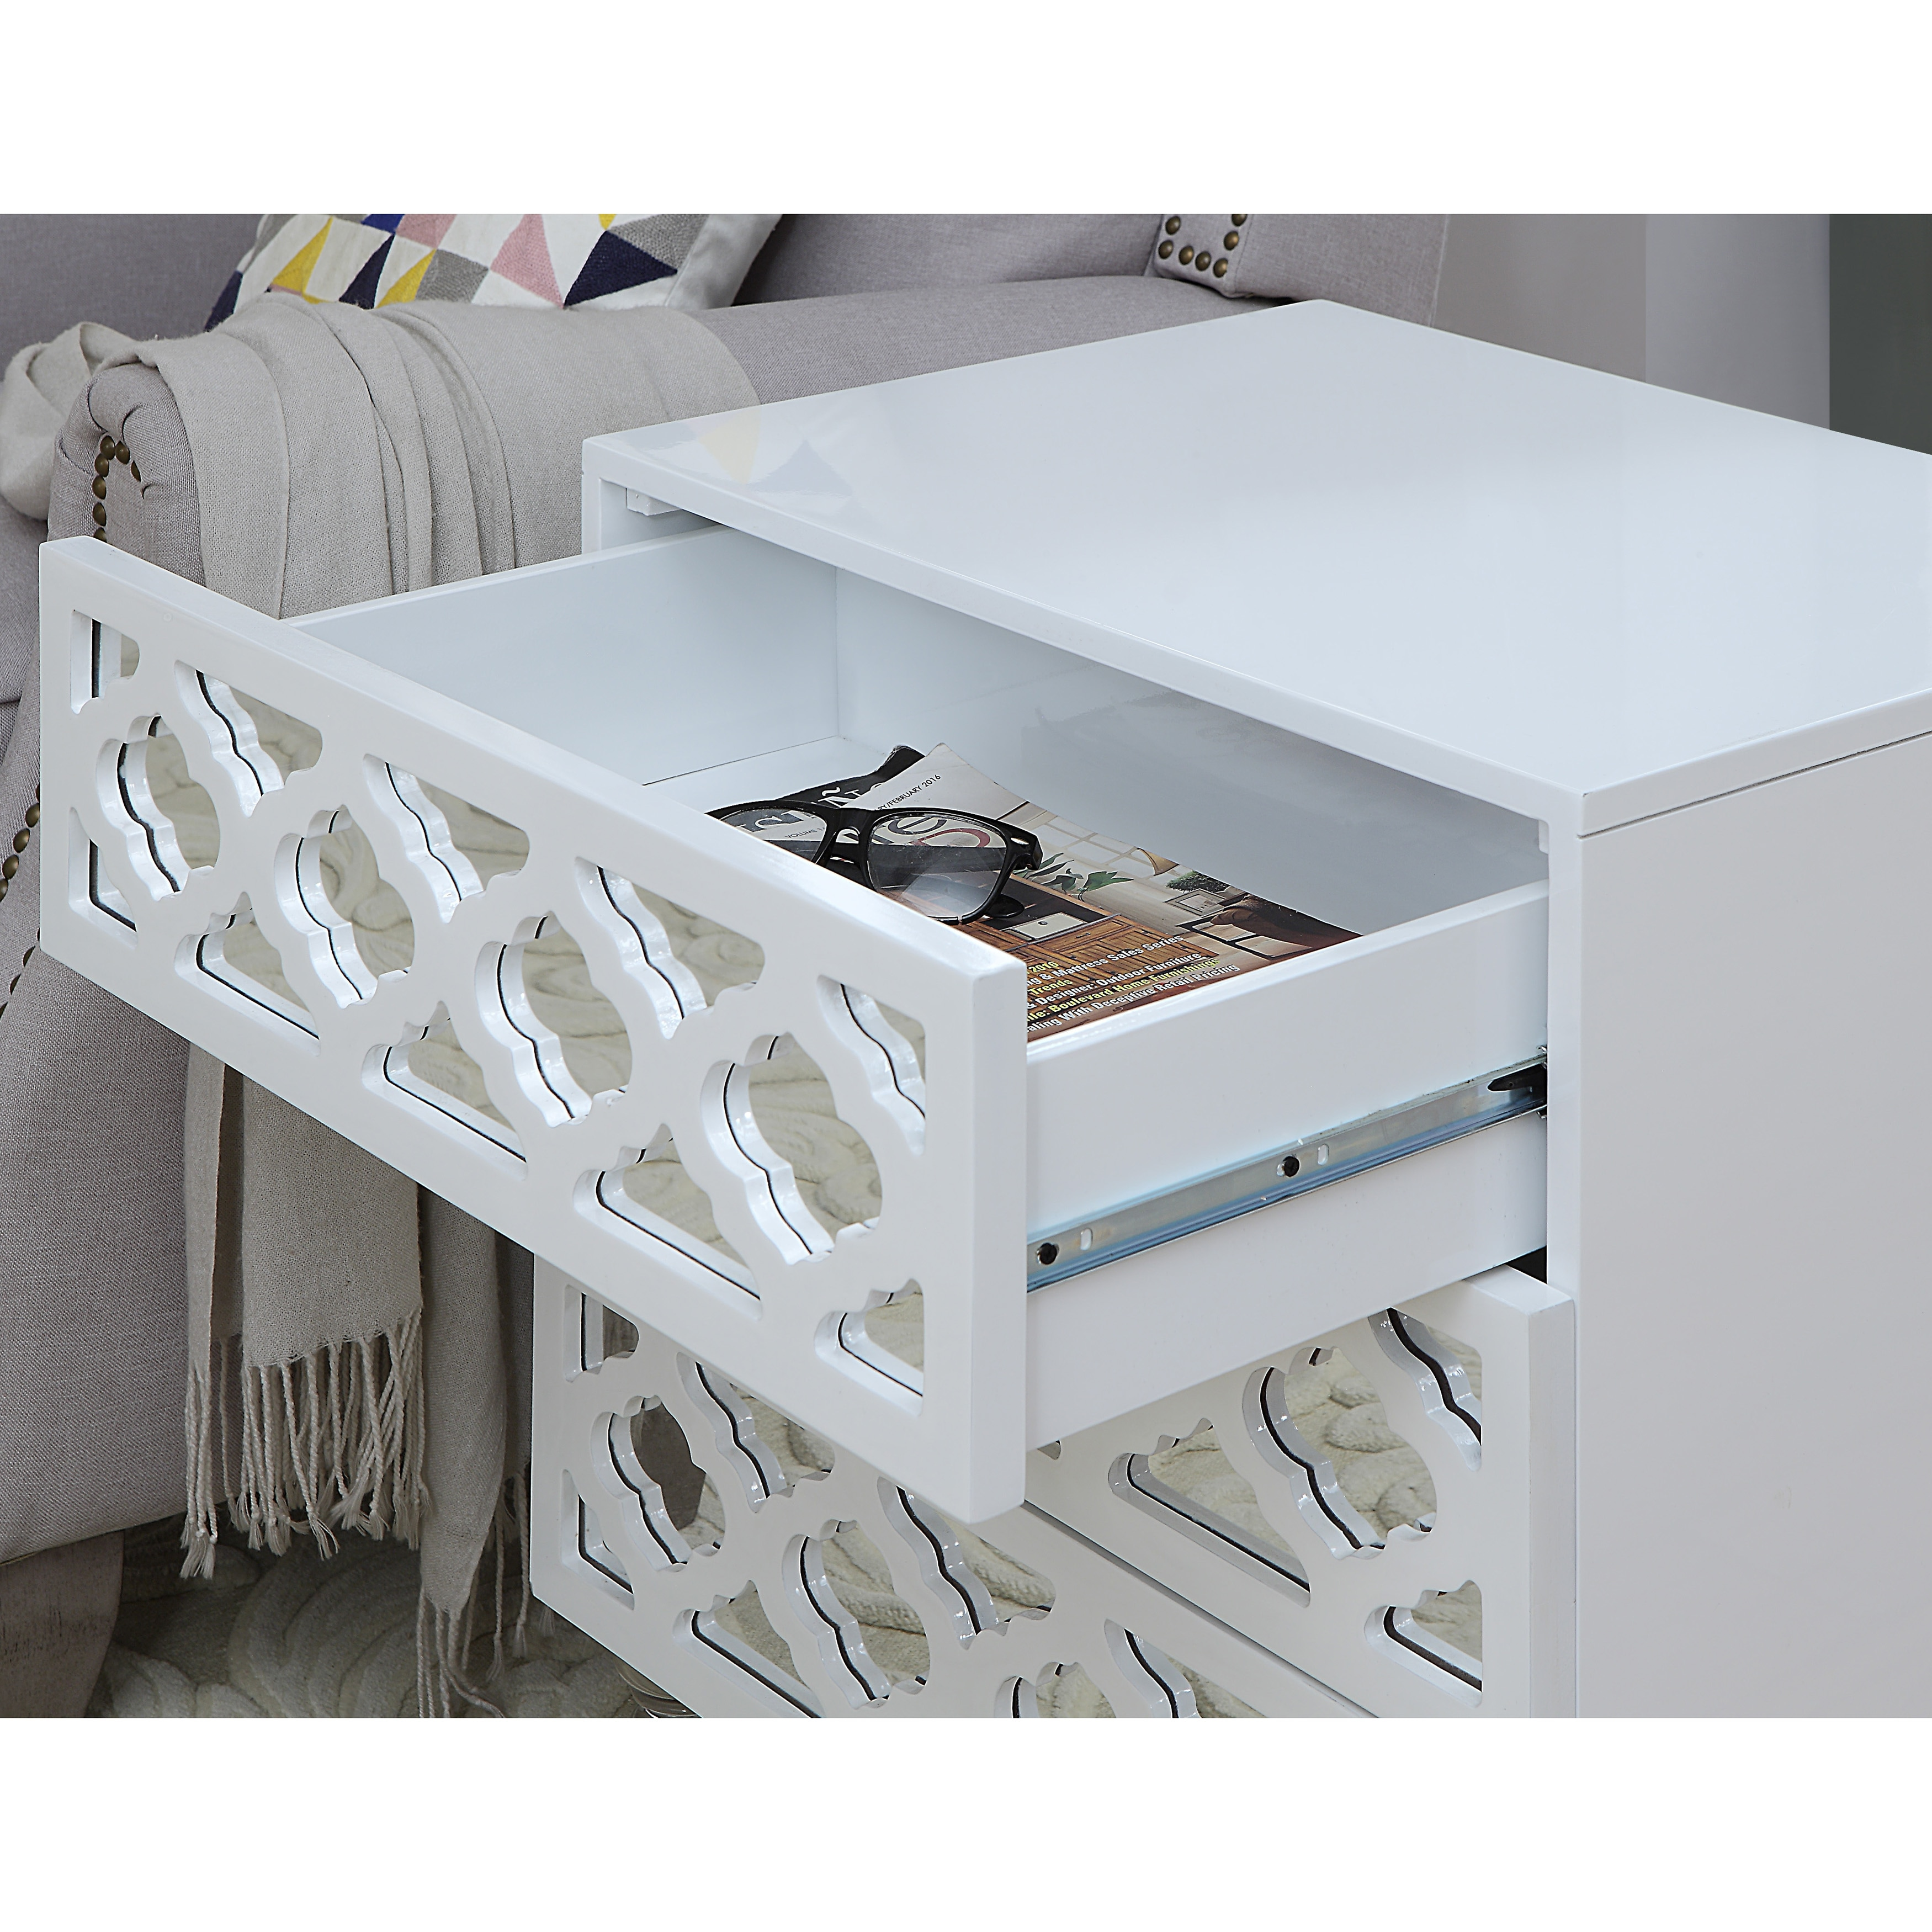 Beau Shop Furniture Of America Brigette Contemporary Acrylic 3 Drawer Side Table    On Sale   Free Shipping Today   Overstock.com   18179632